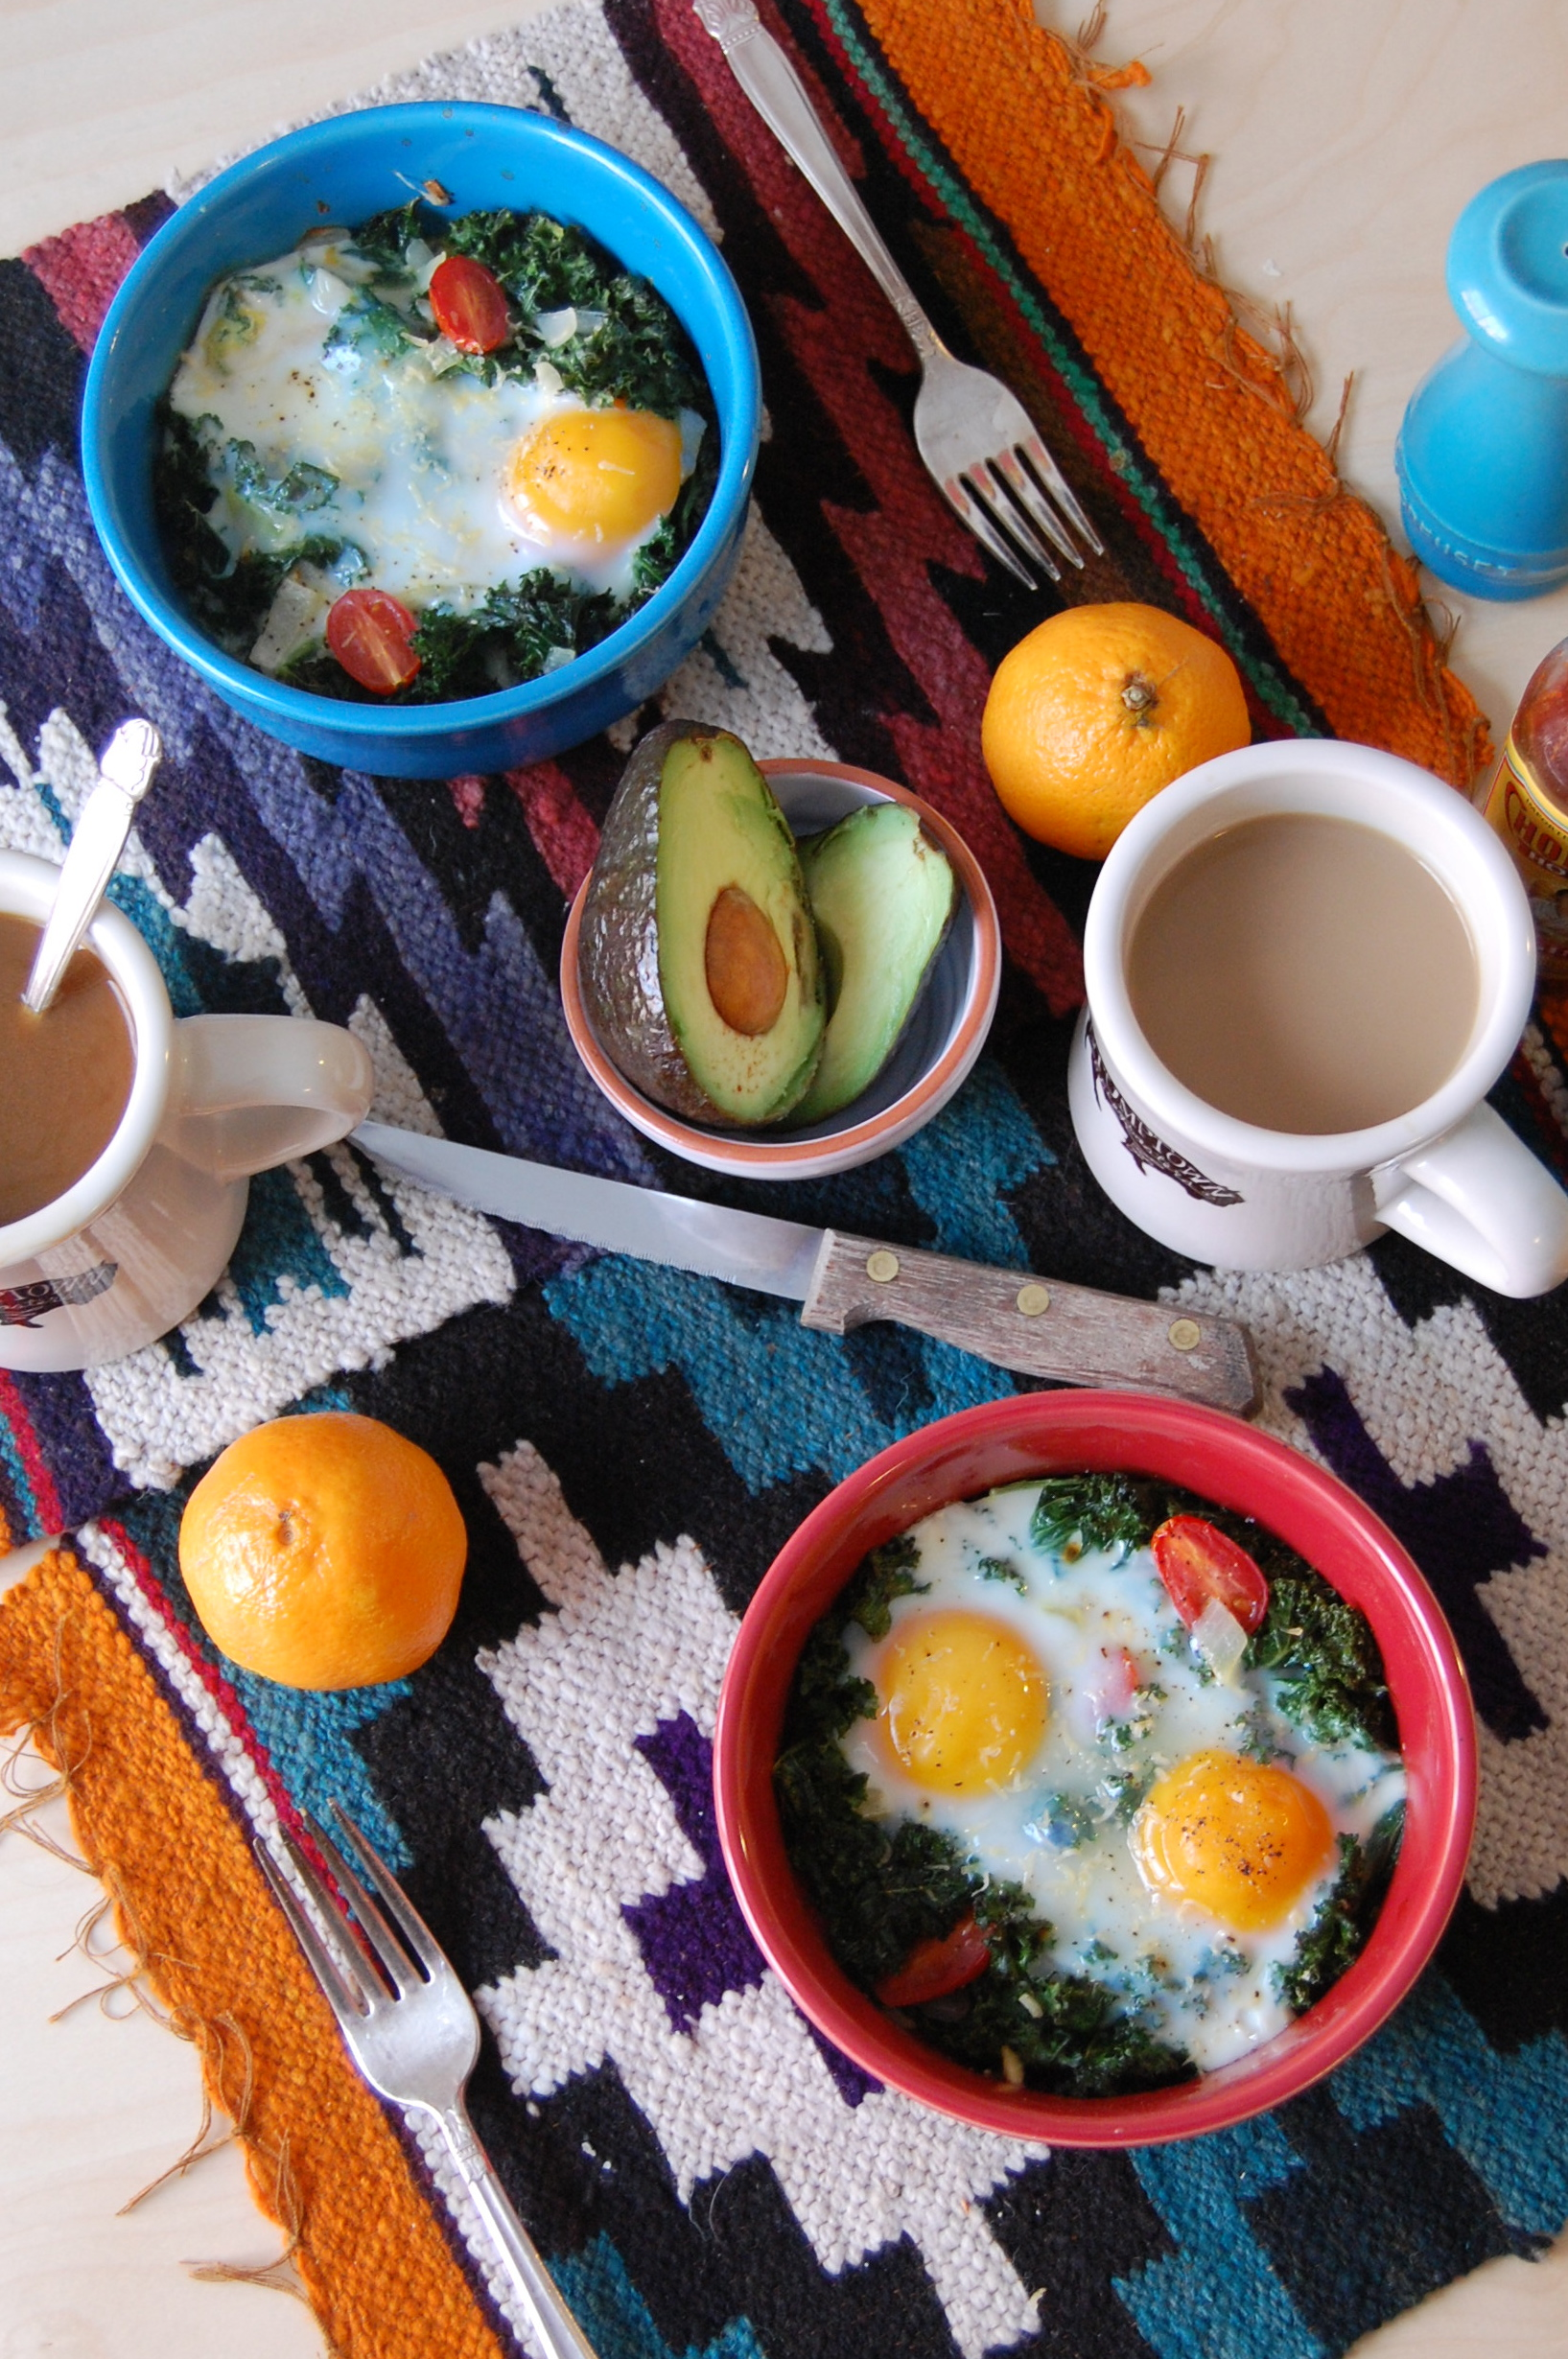 Easy Kale Baked Eggs with Sliced Avocado (multiply for a brunch crowd!)